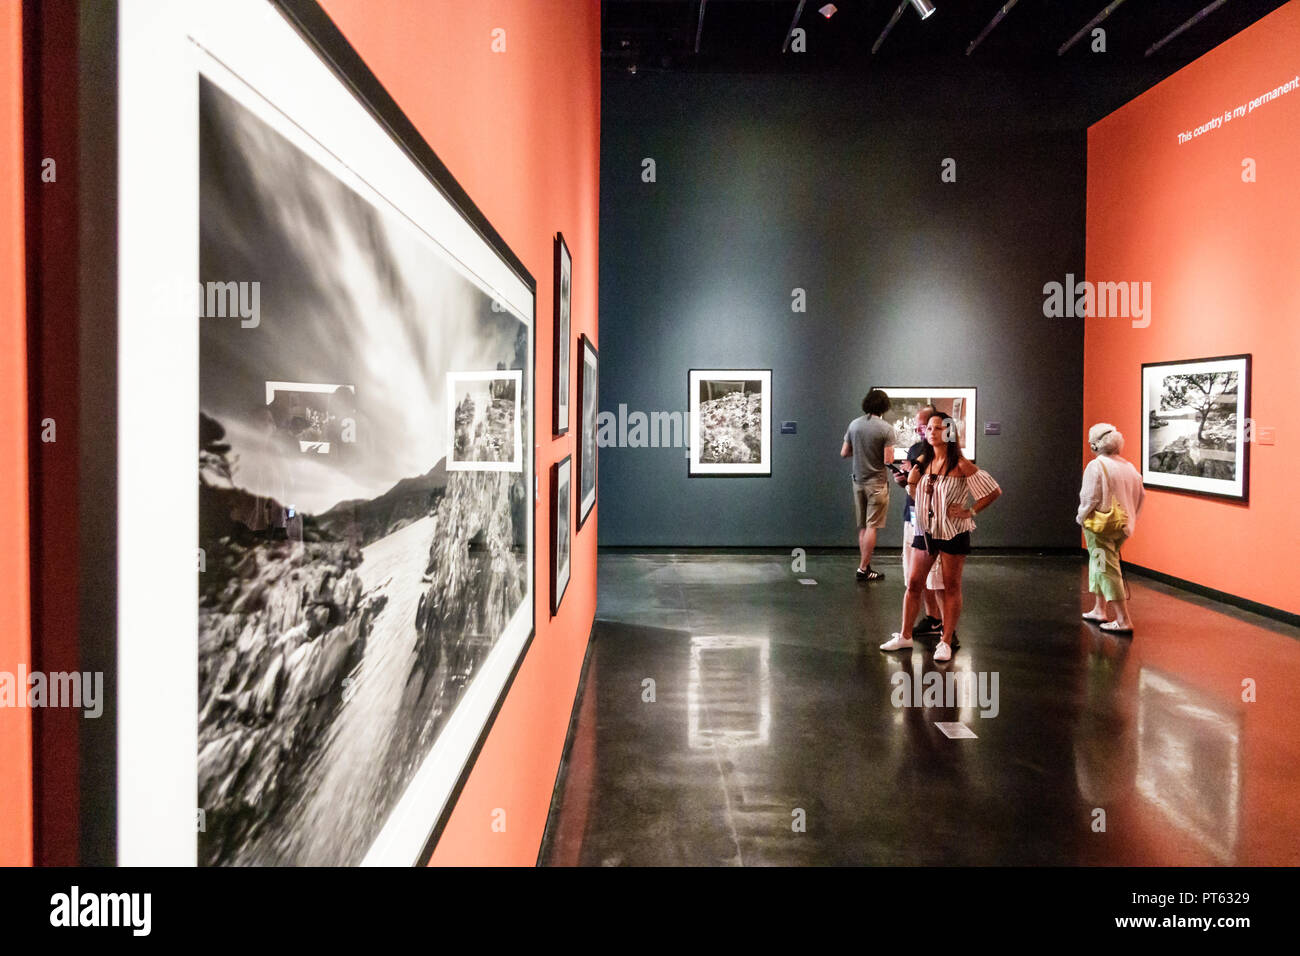 St. Saint Petersburg Florida Salvador Dali Museum surrealist art interior Clyde Butcher photographer large format black & white photographs Visions Da - Stock Image